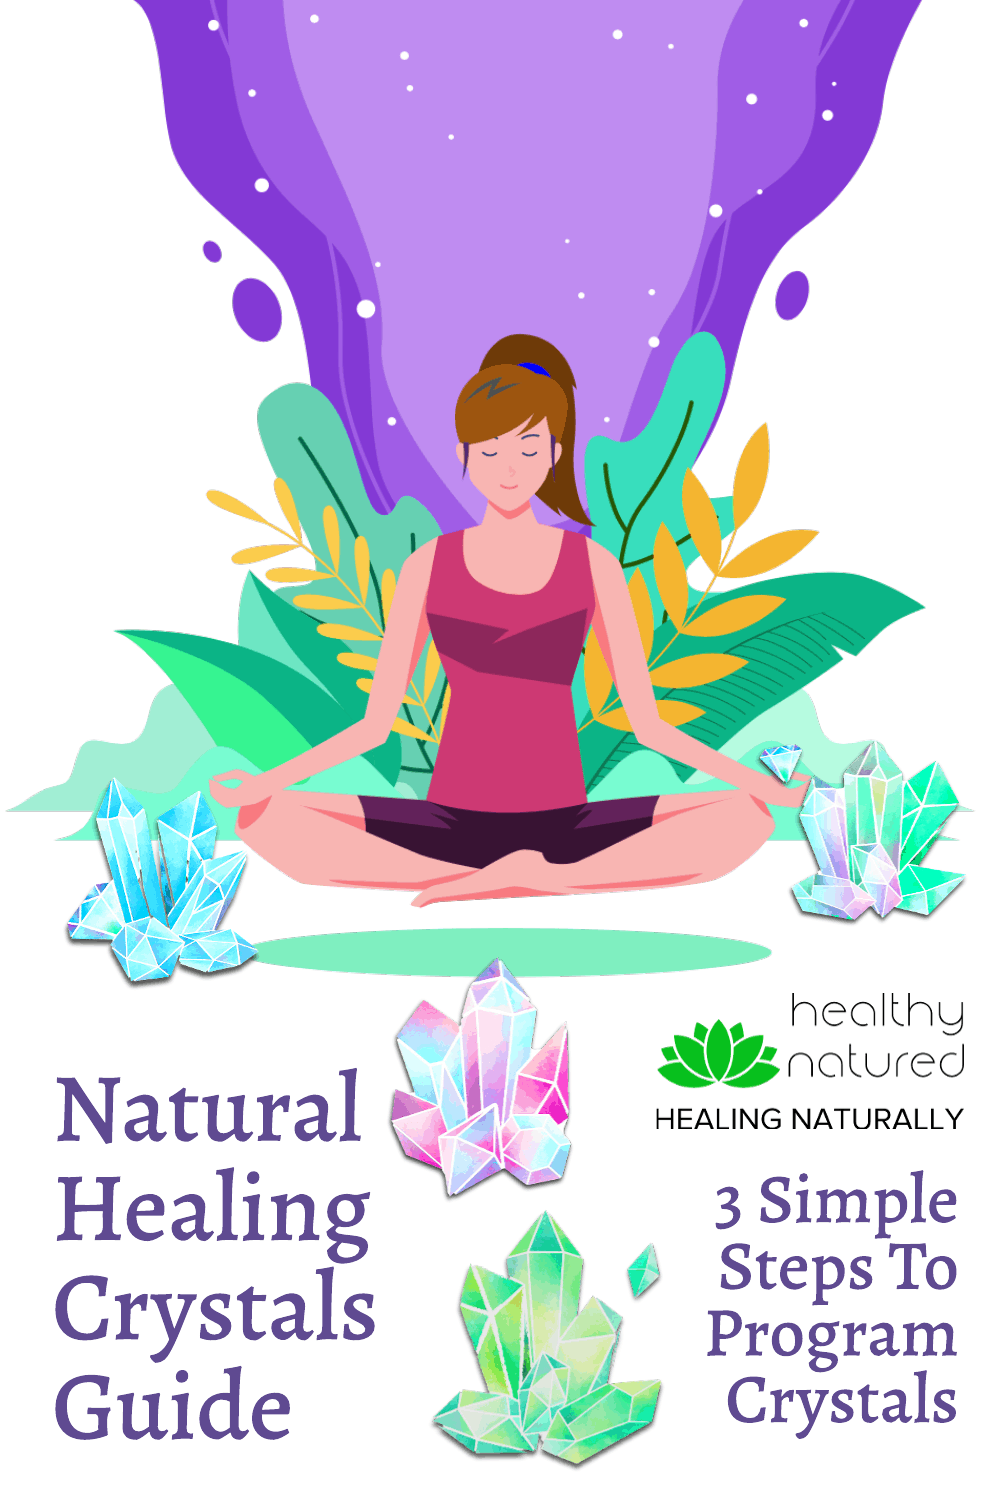 Natural Healing Crystals Guide - 3 Simple Steps To Program Crystals For Healing.